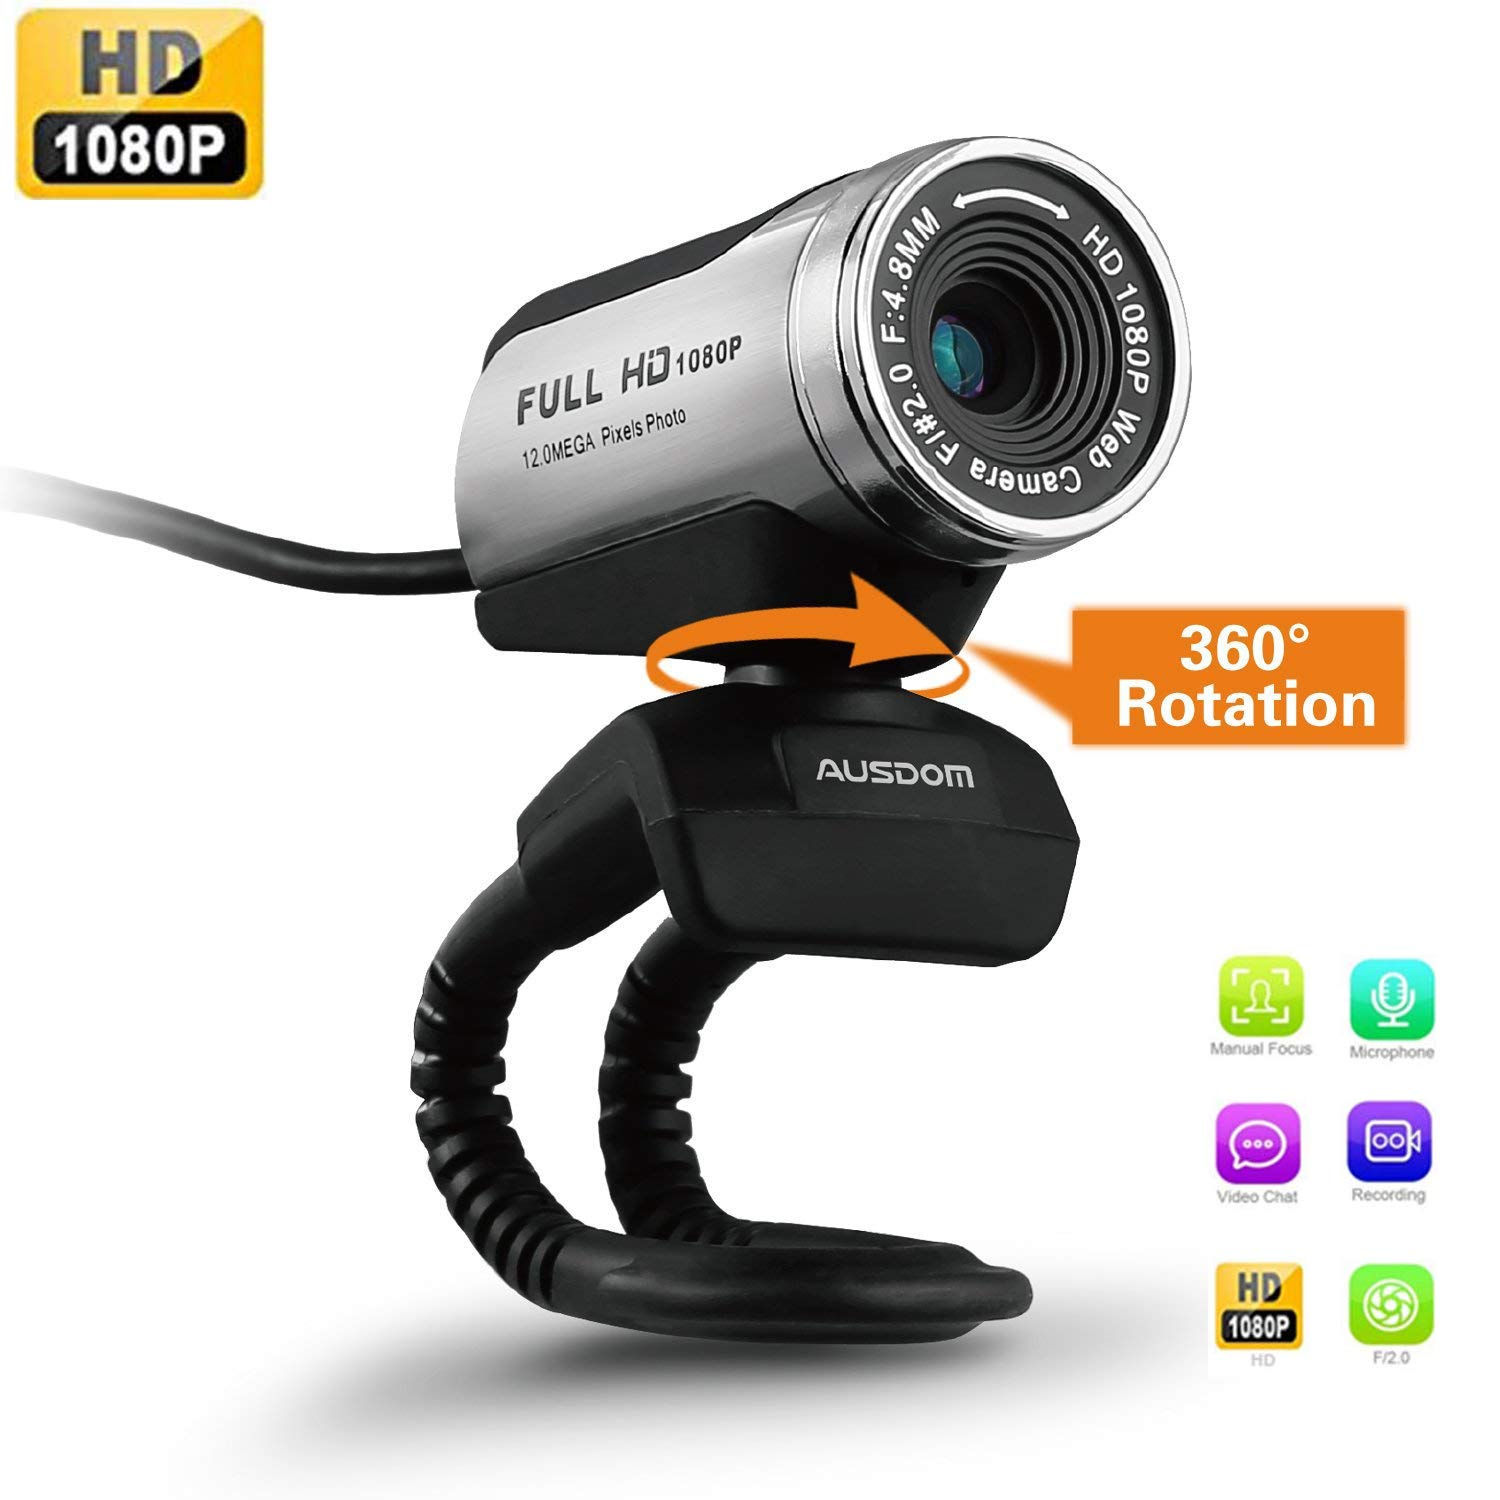 Webcam HD Ausdom® Camera USB 1080p avec micro son pour PC/vlog/youtube Mise au point Manuellement , Plug et Play Windows XP / Vista / 7 / 8 / 10 AW615T